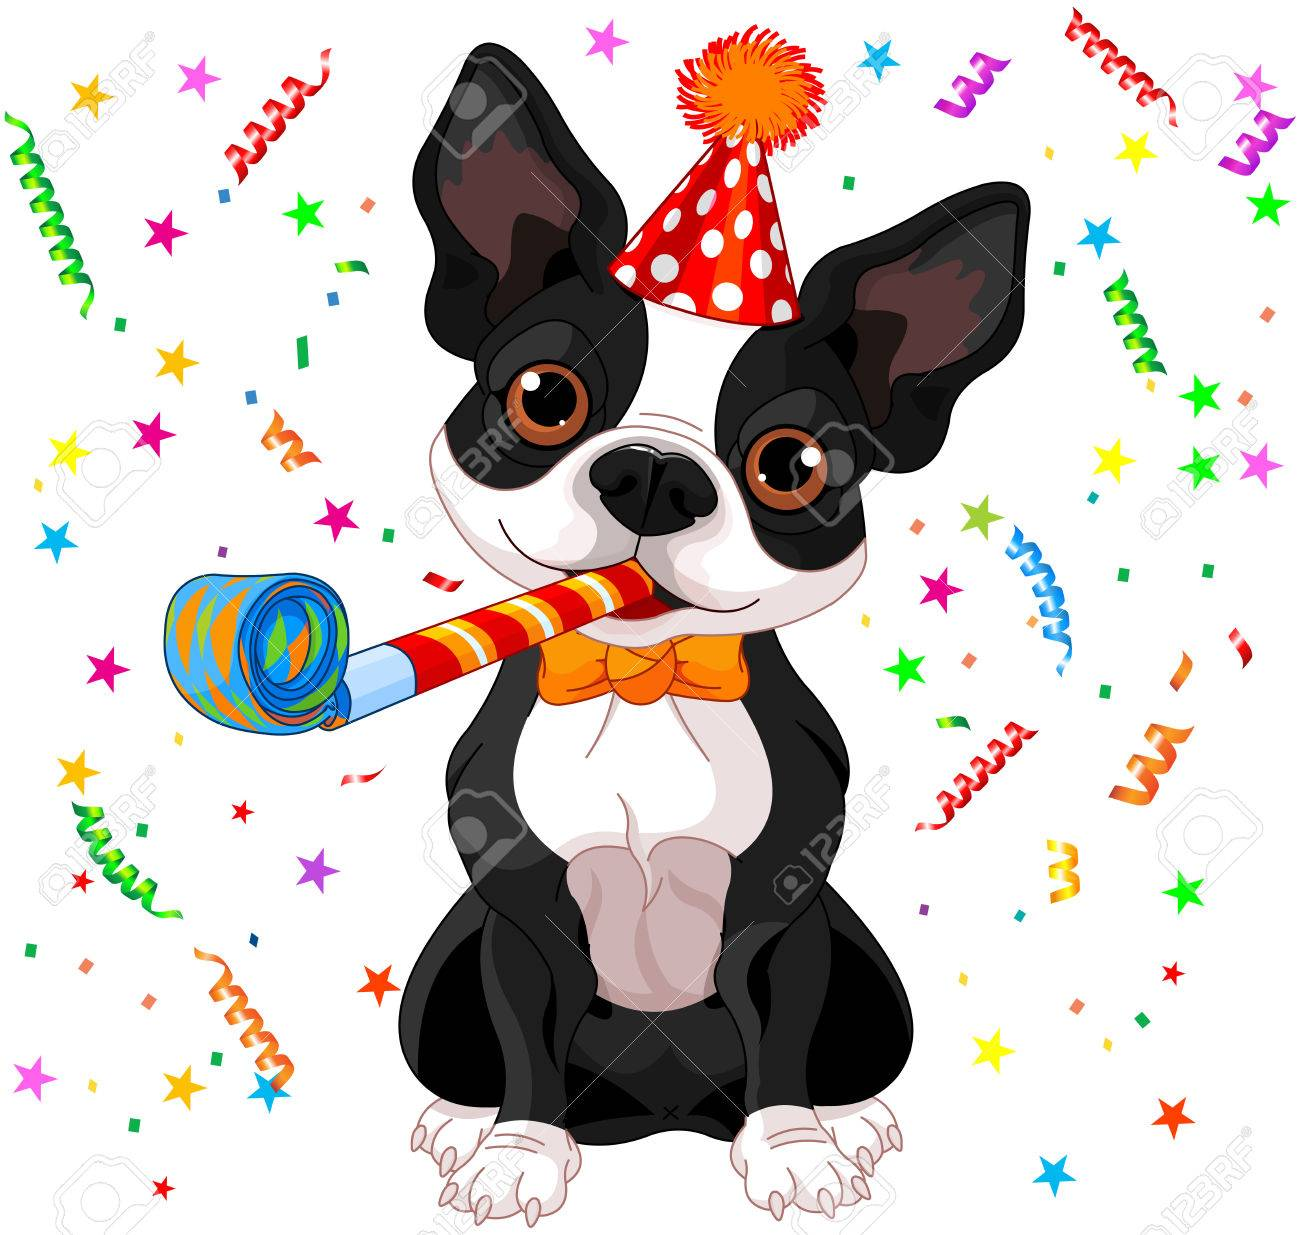 Les mots et leur sens - Page 4 35588778-illustration-of-cute-boston-terrier-celebrating